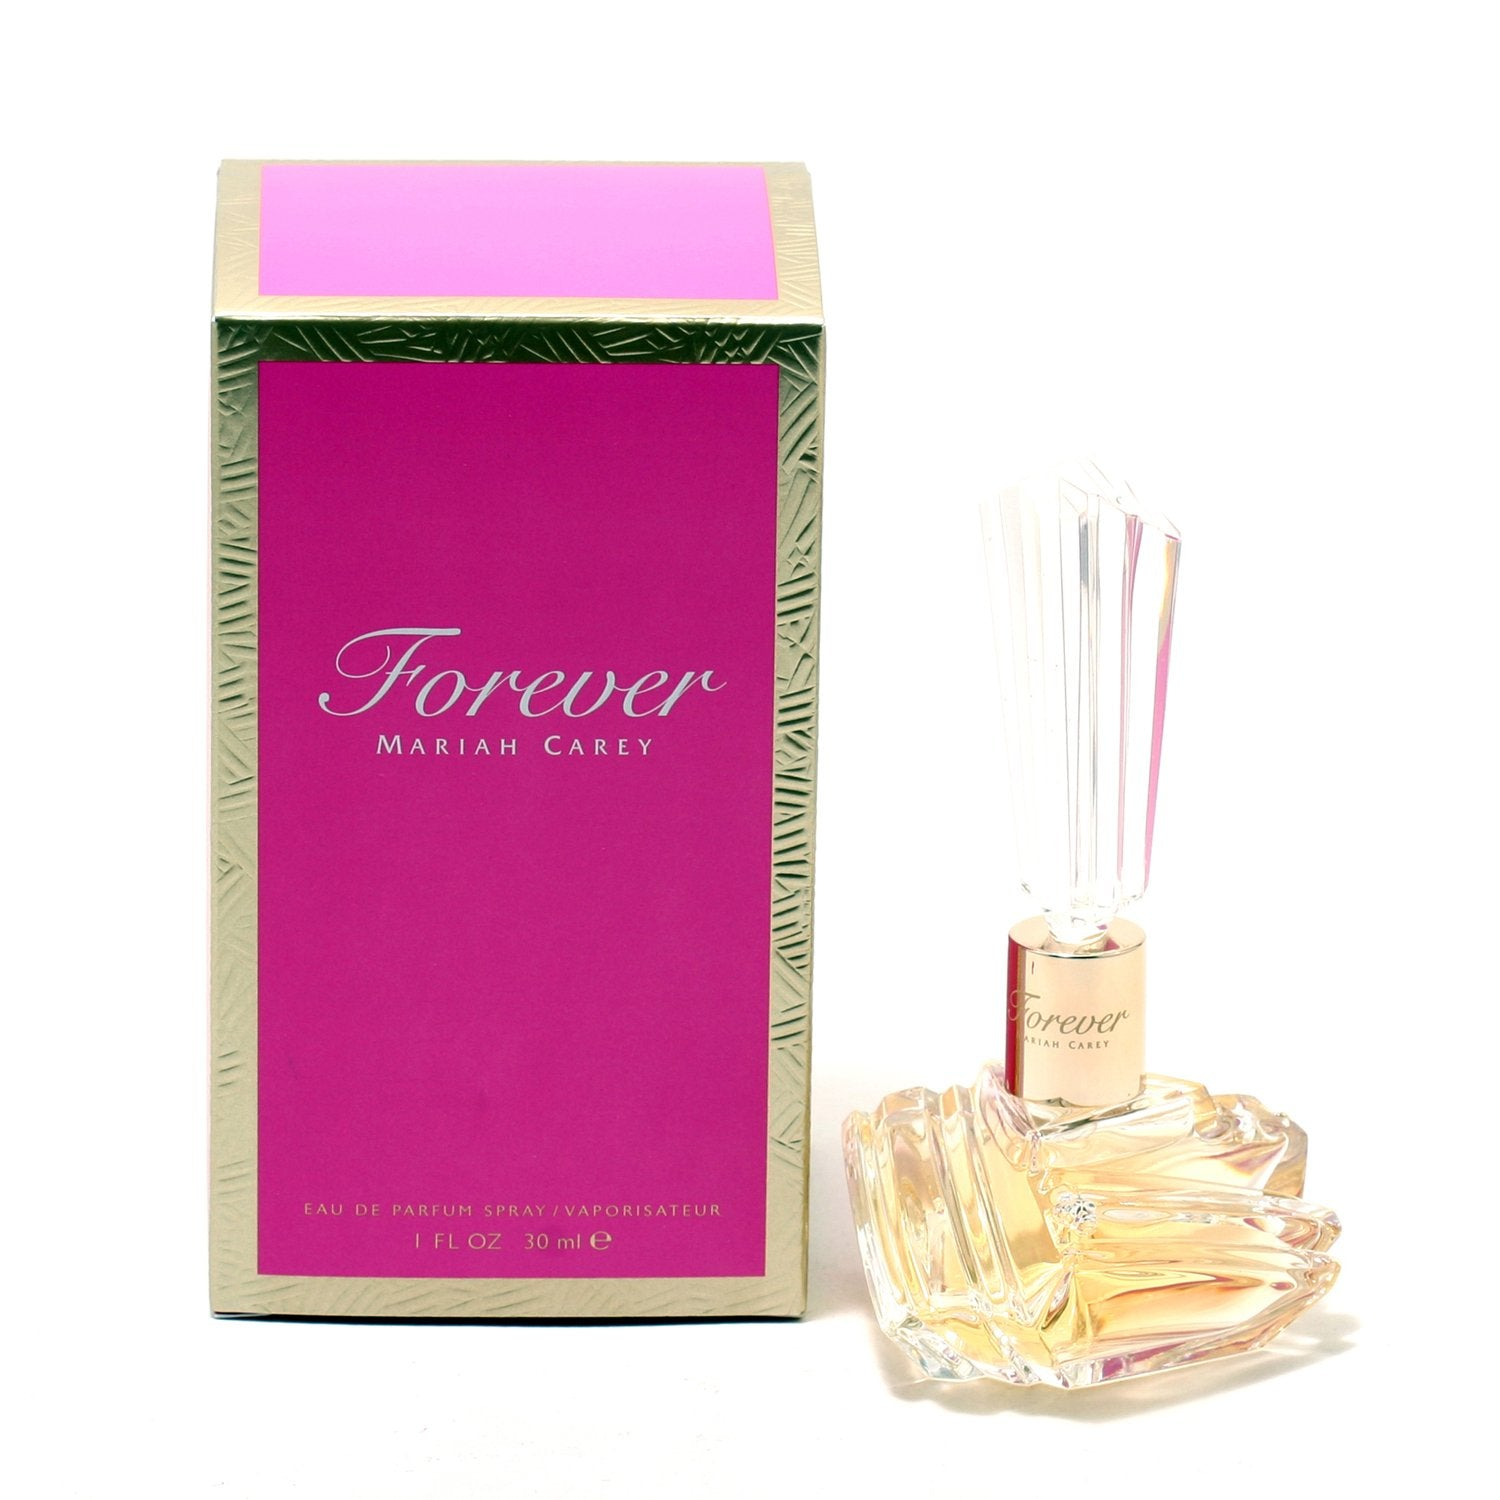 Perfume - MARIAH CAREY FOREVER FOR WOMEN - EAU DE PARFUM SPRAY